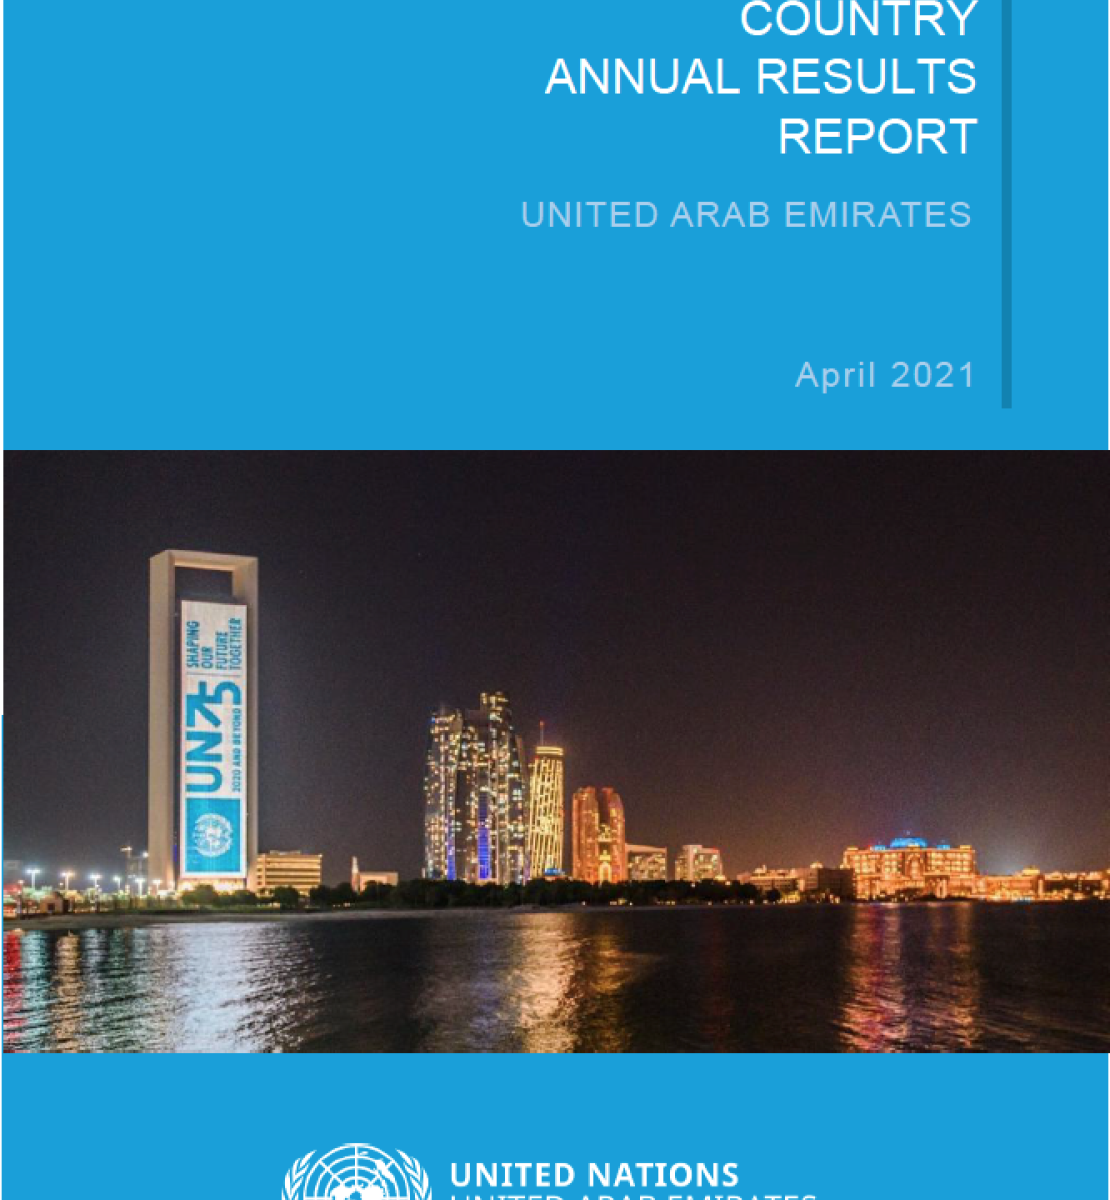 Cover shows a scene view of a waterfront with a huge sign to the left of the UN75 emblem, with the title of the report above in white against a solid blue background and UNCT logo in white against a solid blue background just below the image.